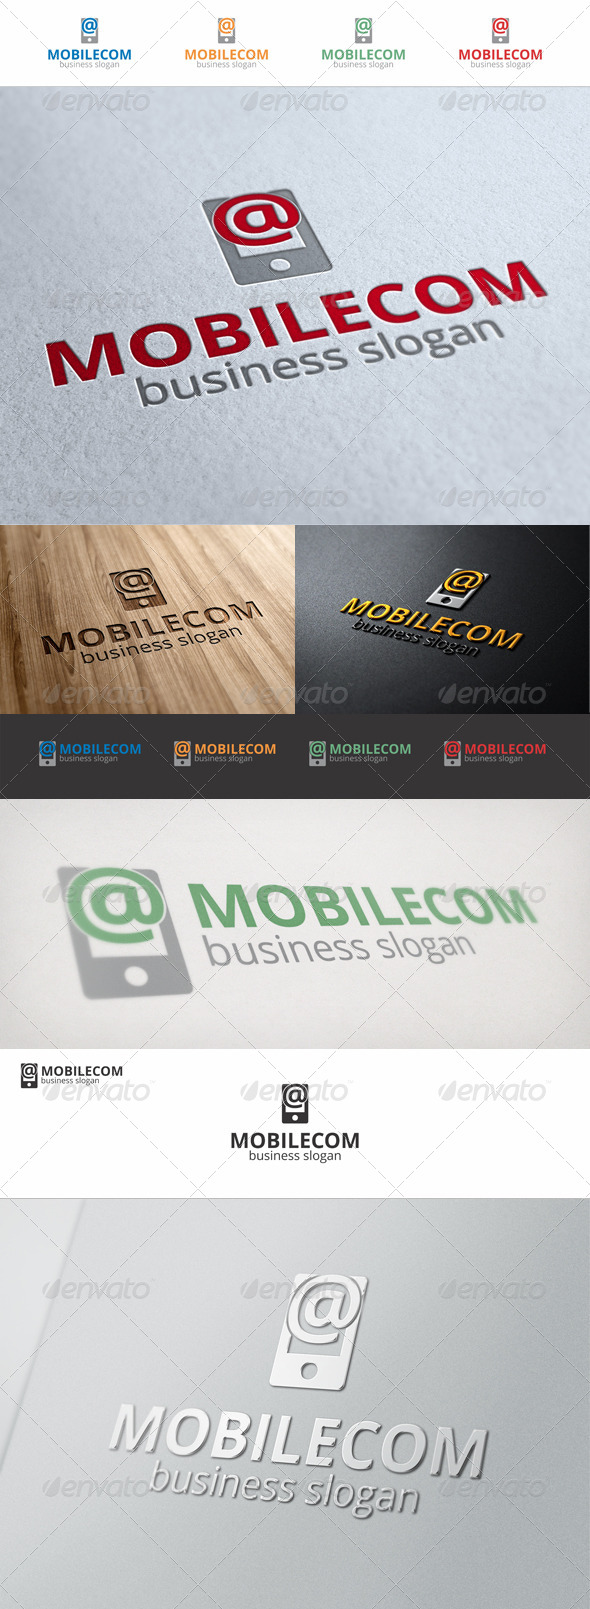 GraphicRiver Mobile Com Internet Logo 6914437